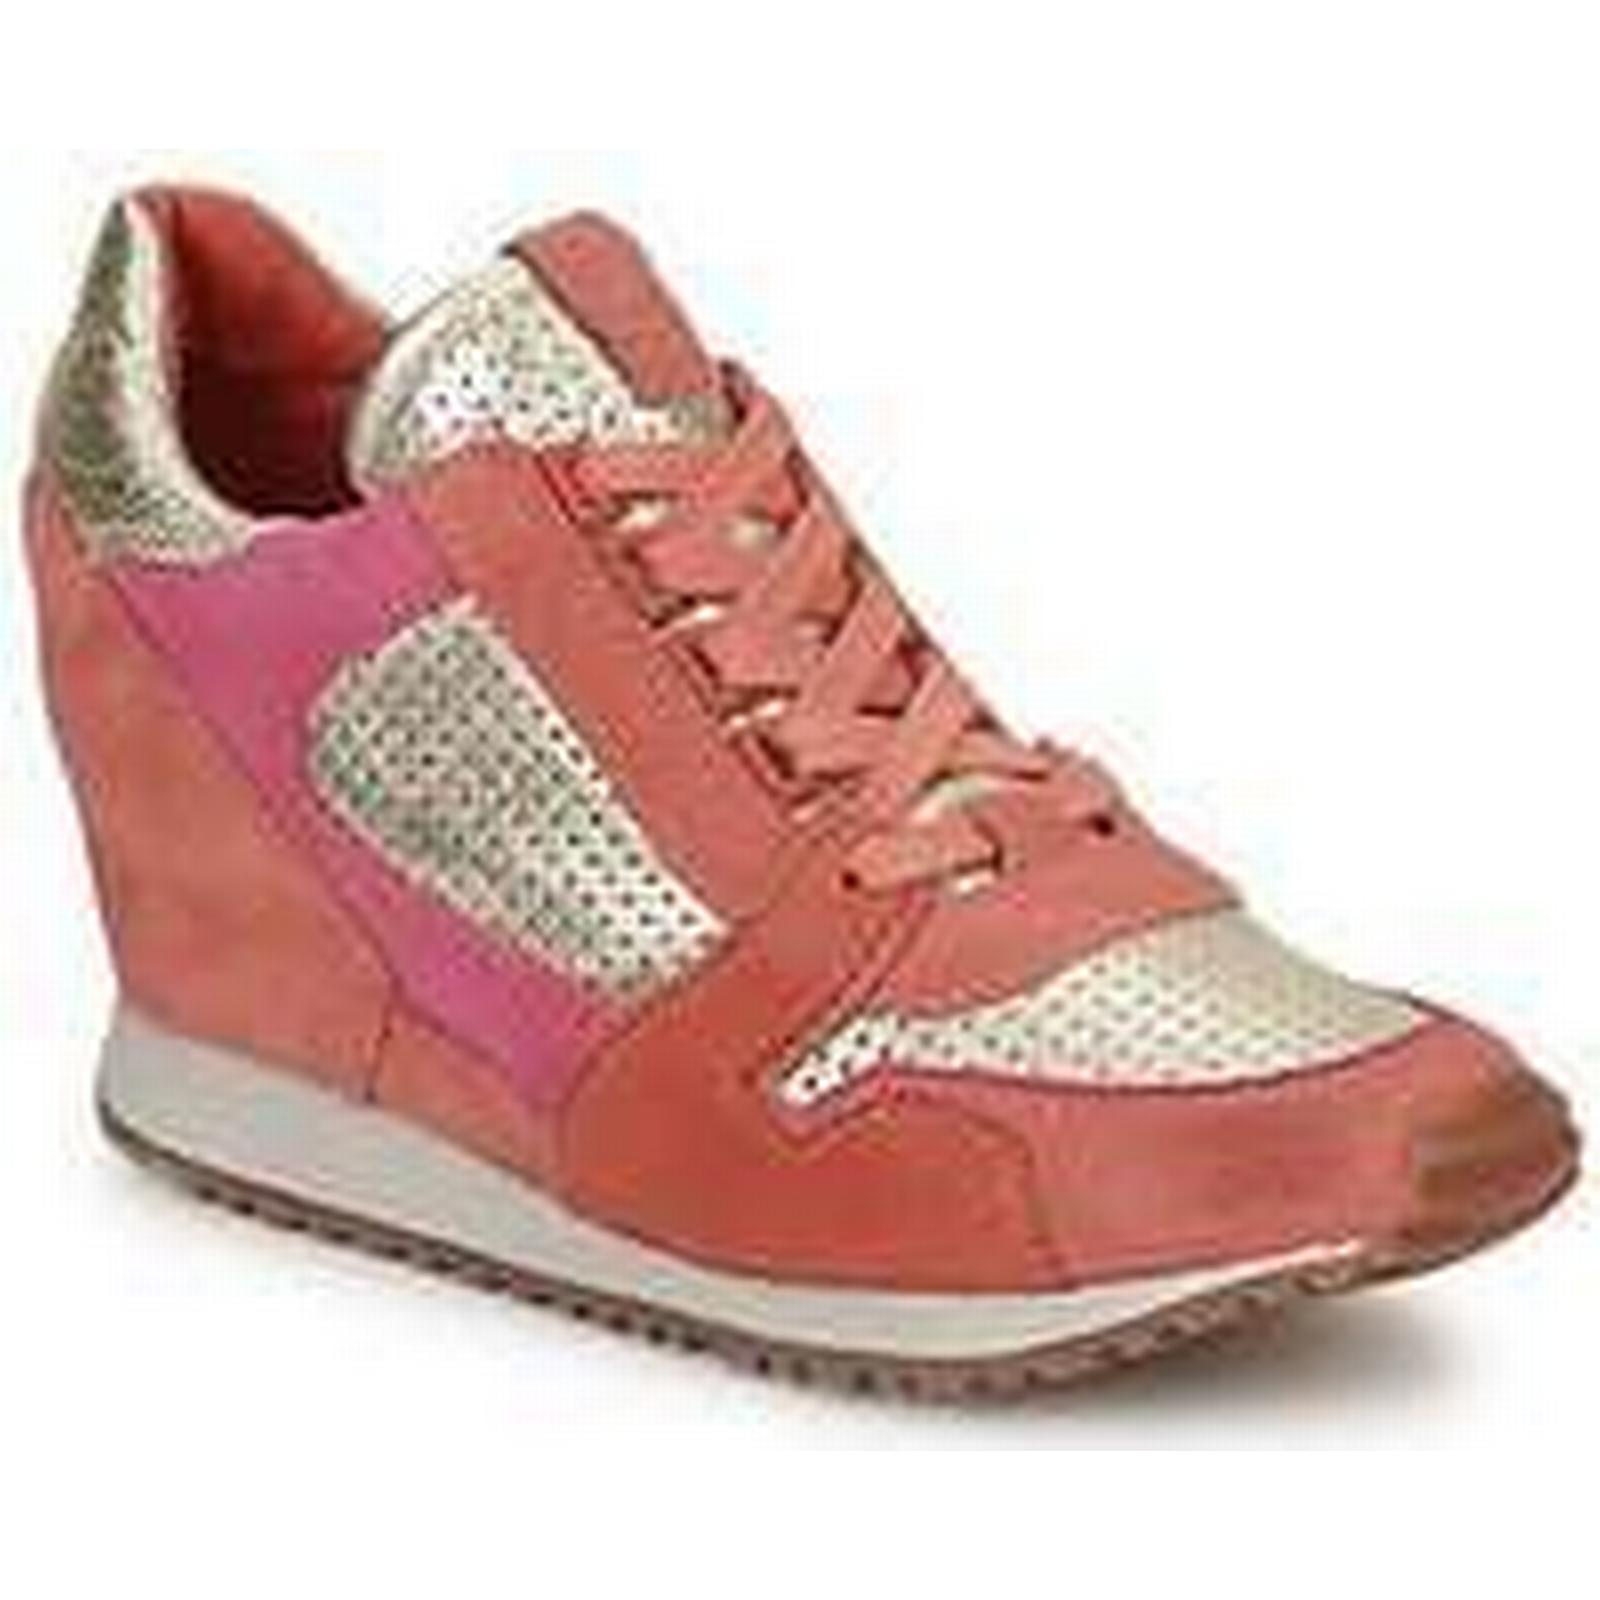 Spartoo.co.uk Ash (Trainers) DEAN BIS women's Shoes (Trainers) Ash in Gold 73bec9